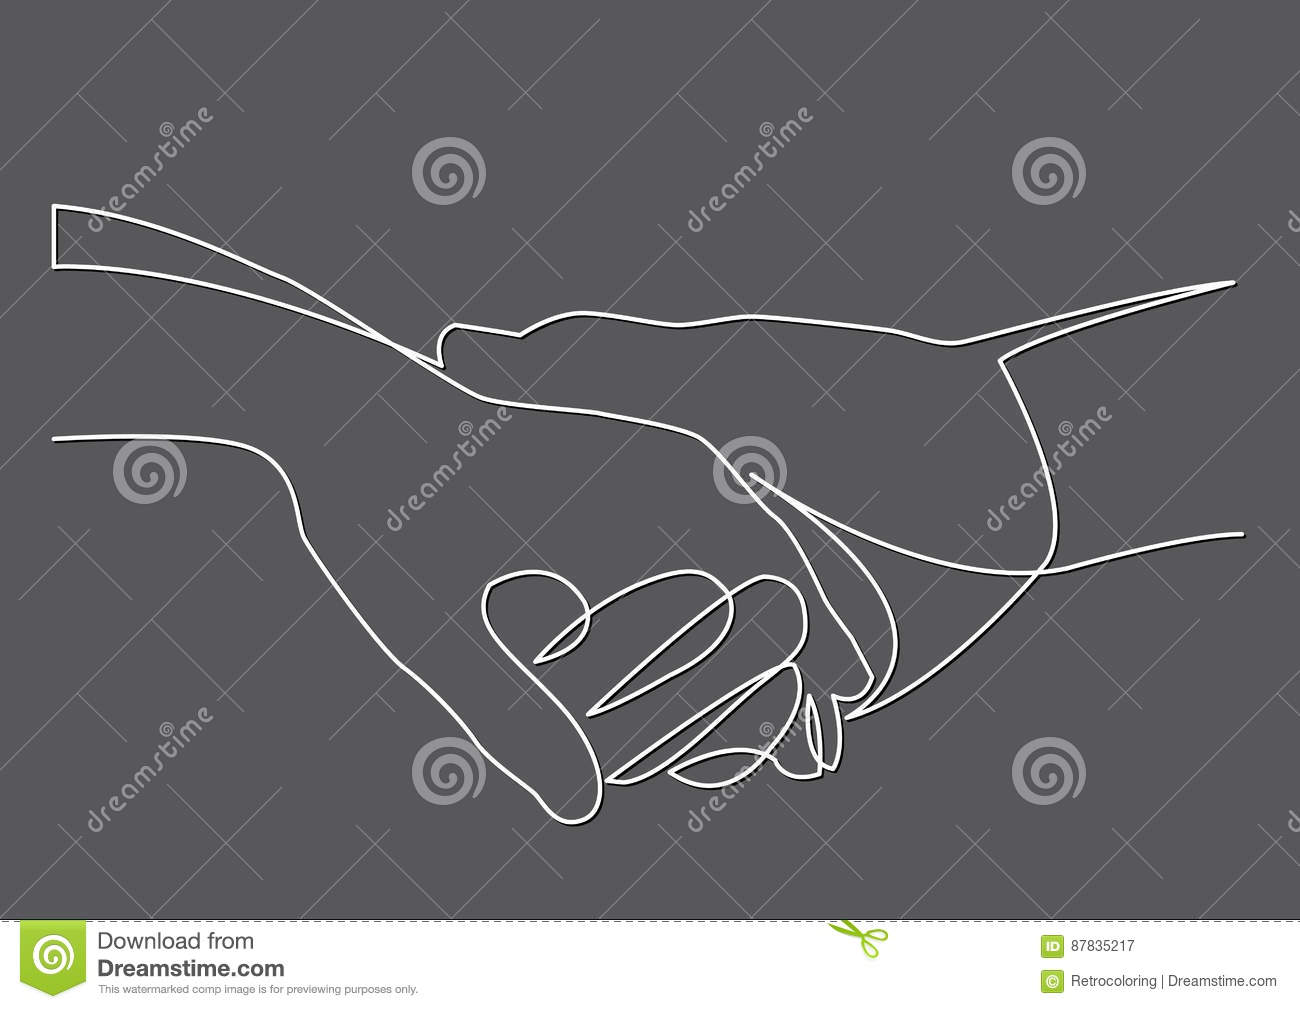 Line Drawing Holding Hands : Continuous line drawing of holding hands together stock vector